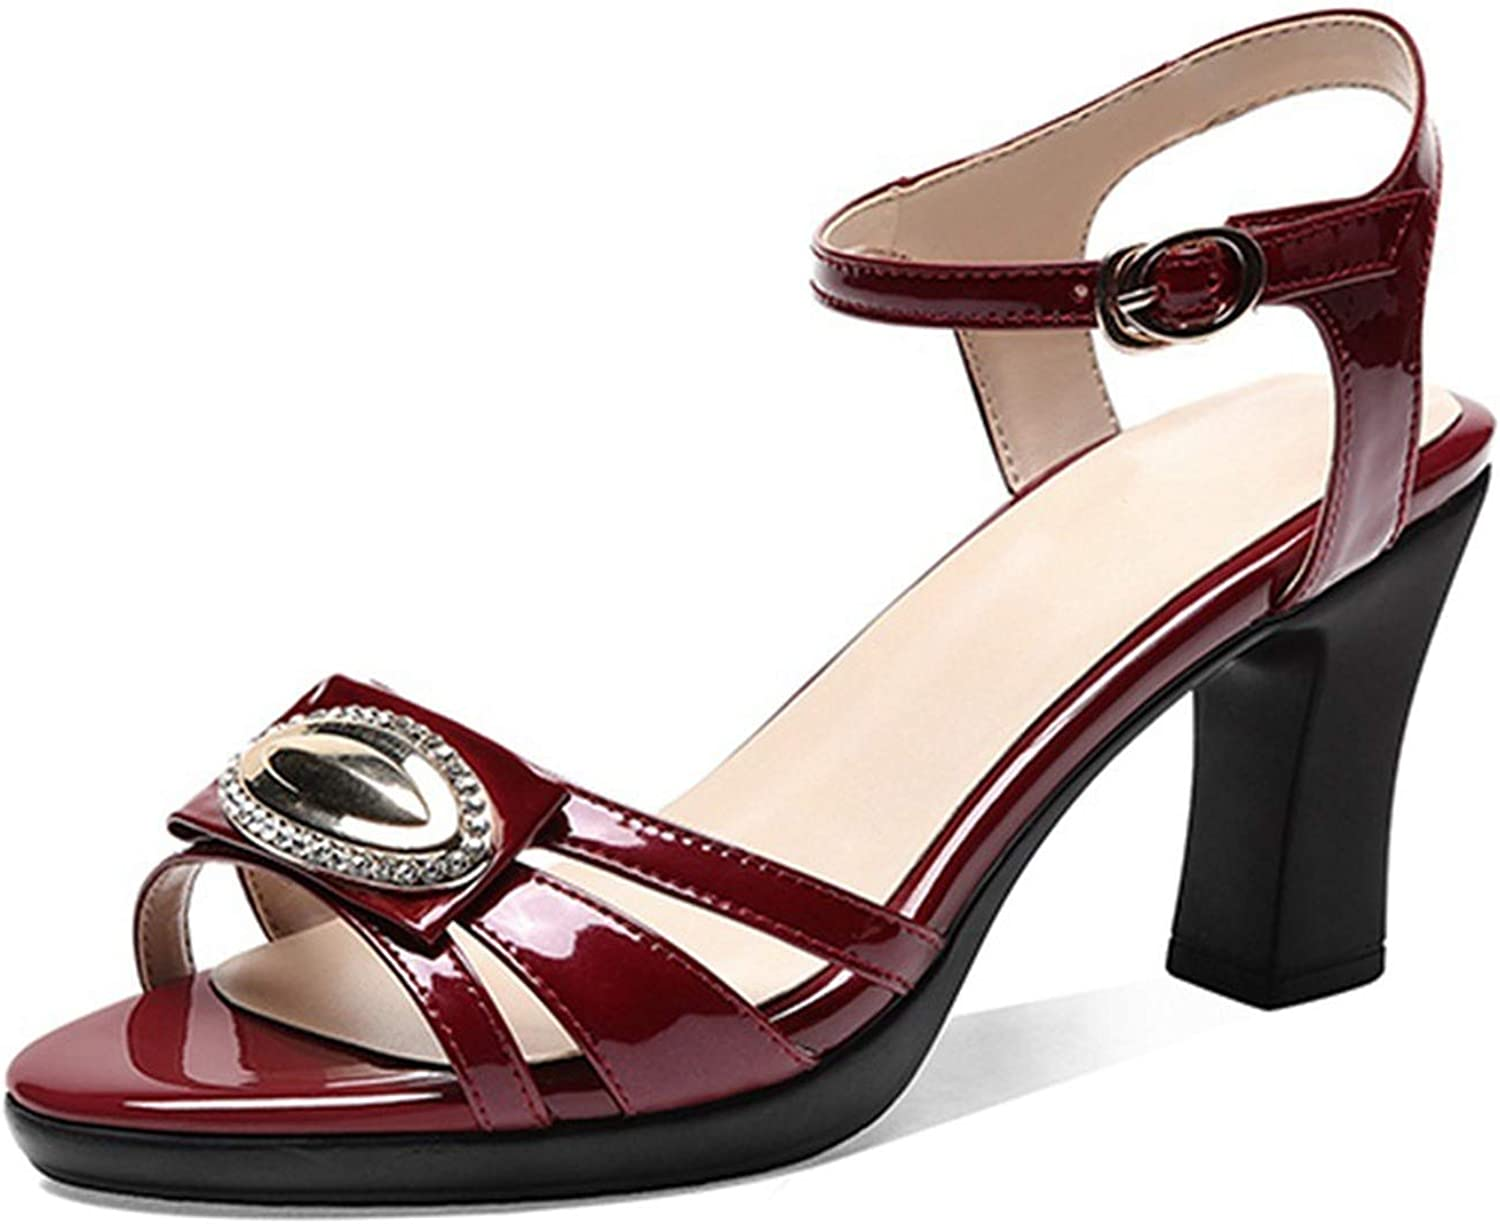 SANDIP MIKEY Genuine Leather Gladiator Sandals Women Ankle Strap High Heels Summer Party Dress shoes